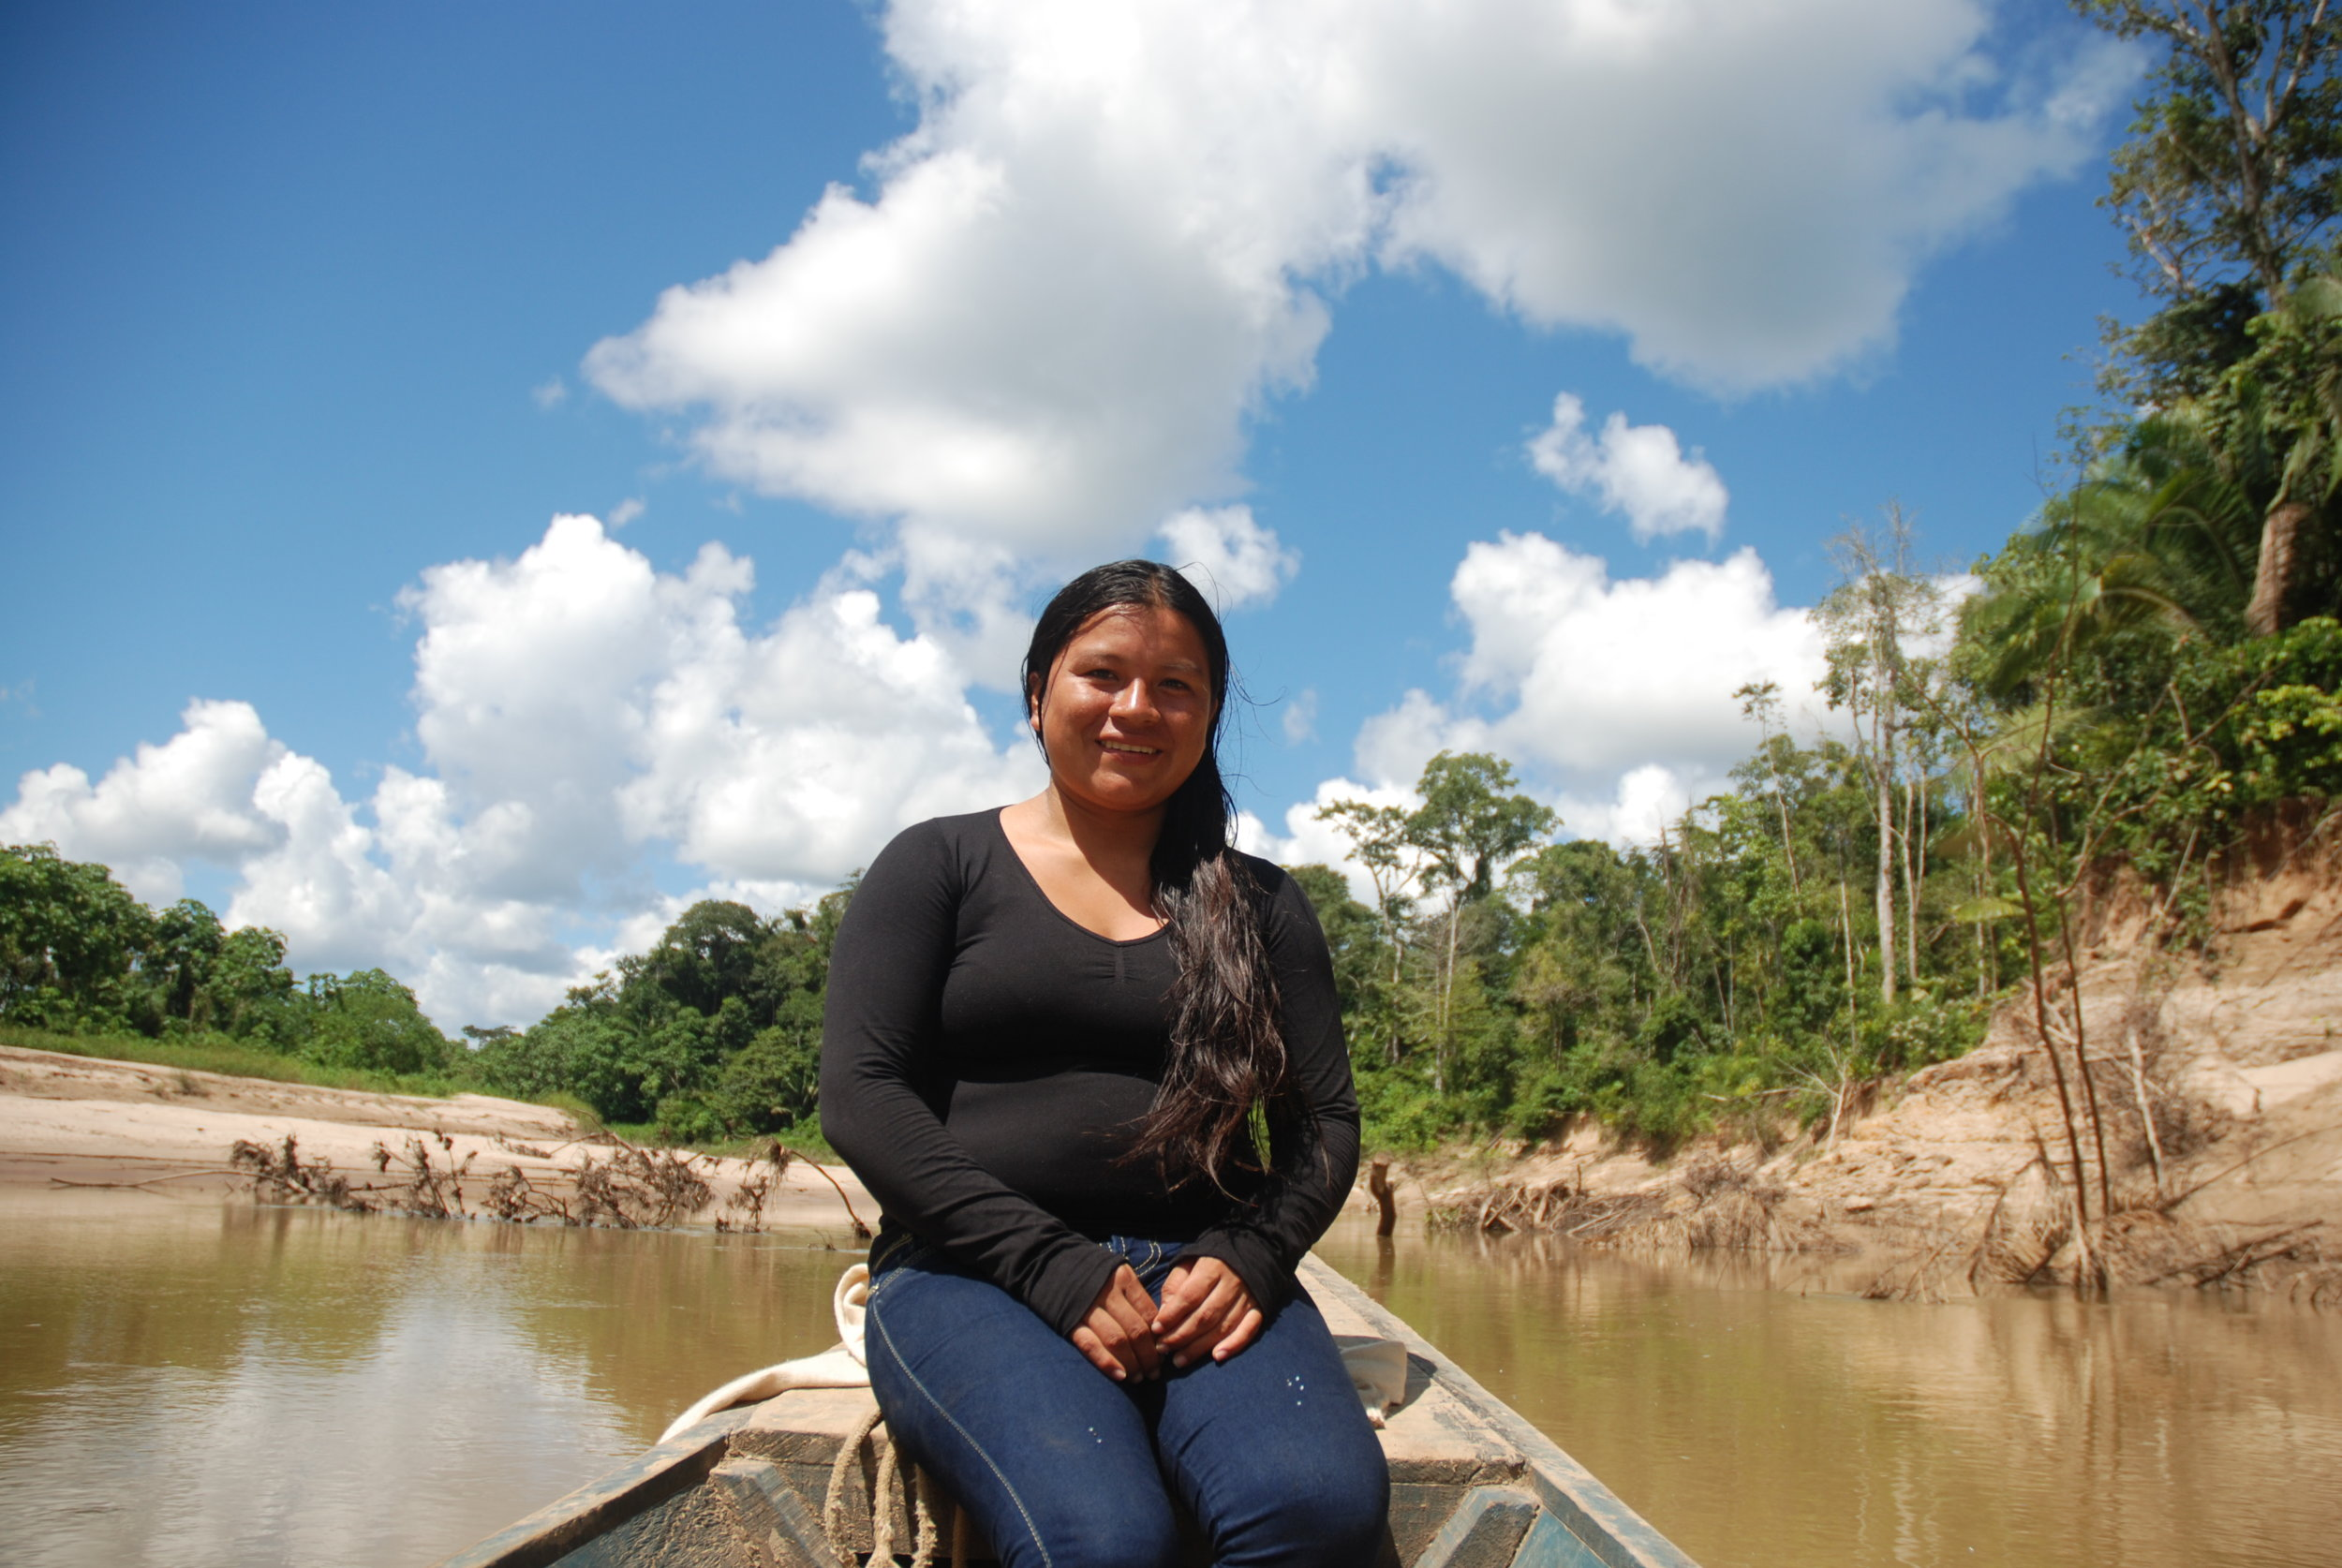 Diana Rios Rengifo, an Ashéninka leader along the River Tamaya, Peru. Diana's father was assassinated in September 2014. The killers remain at-large. Credit: David Hill